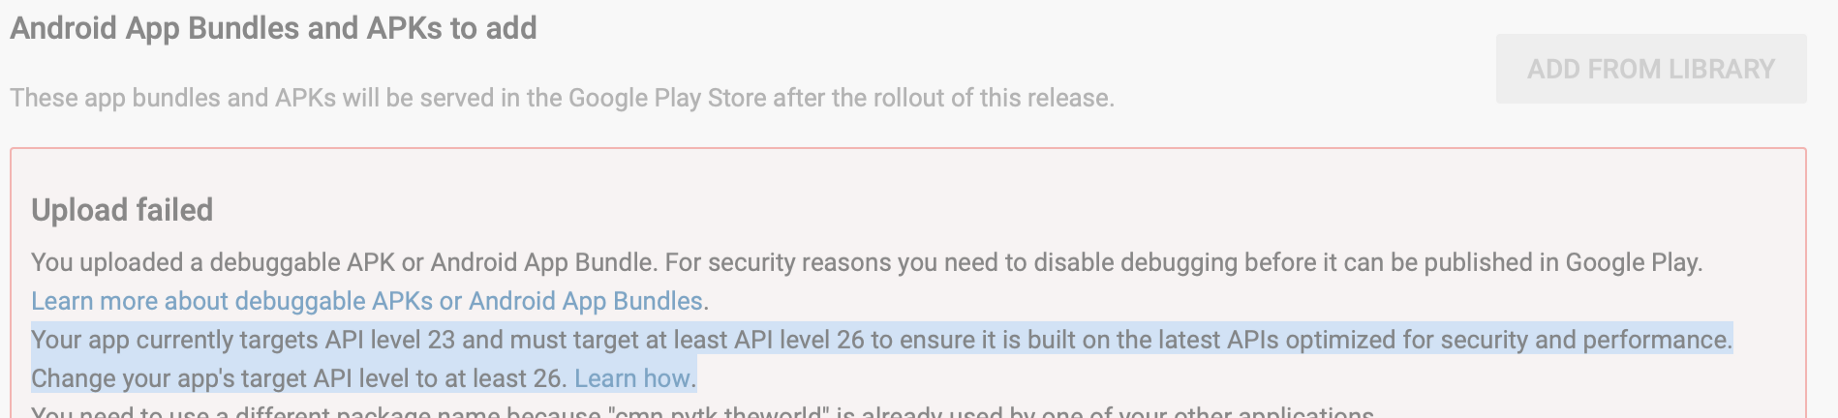 Google Play warning —App must target at least API level 26 to ensure